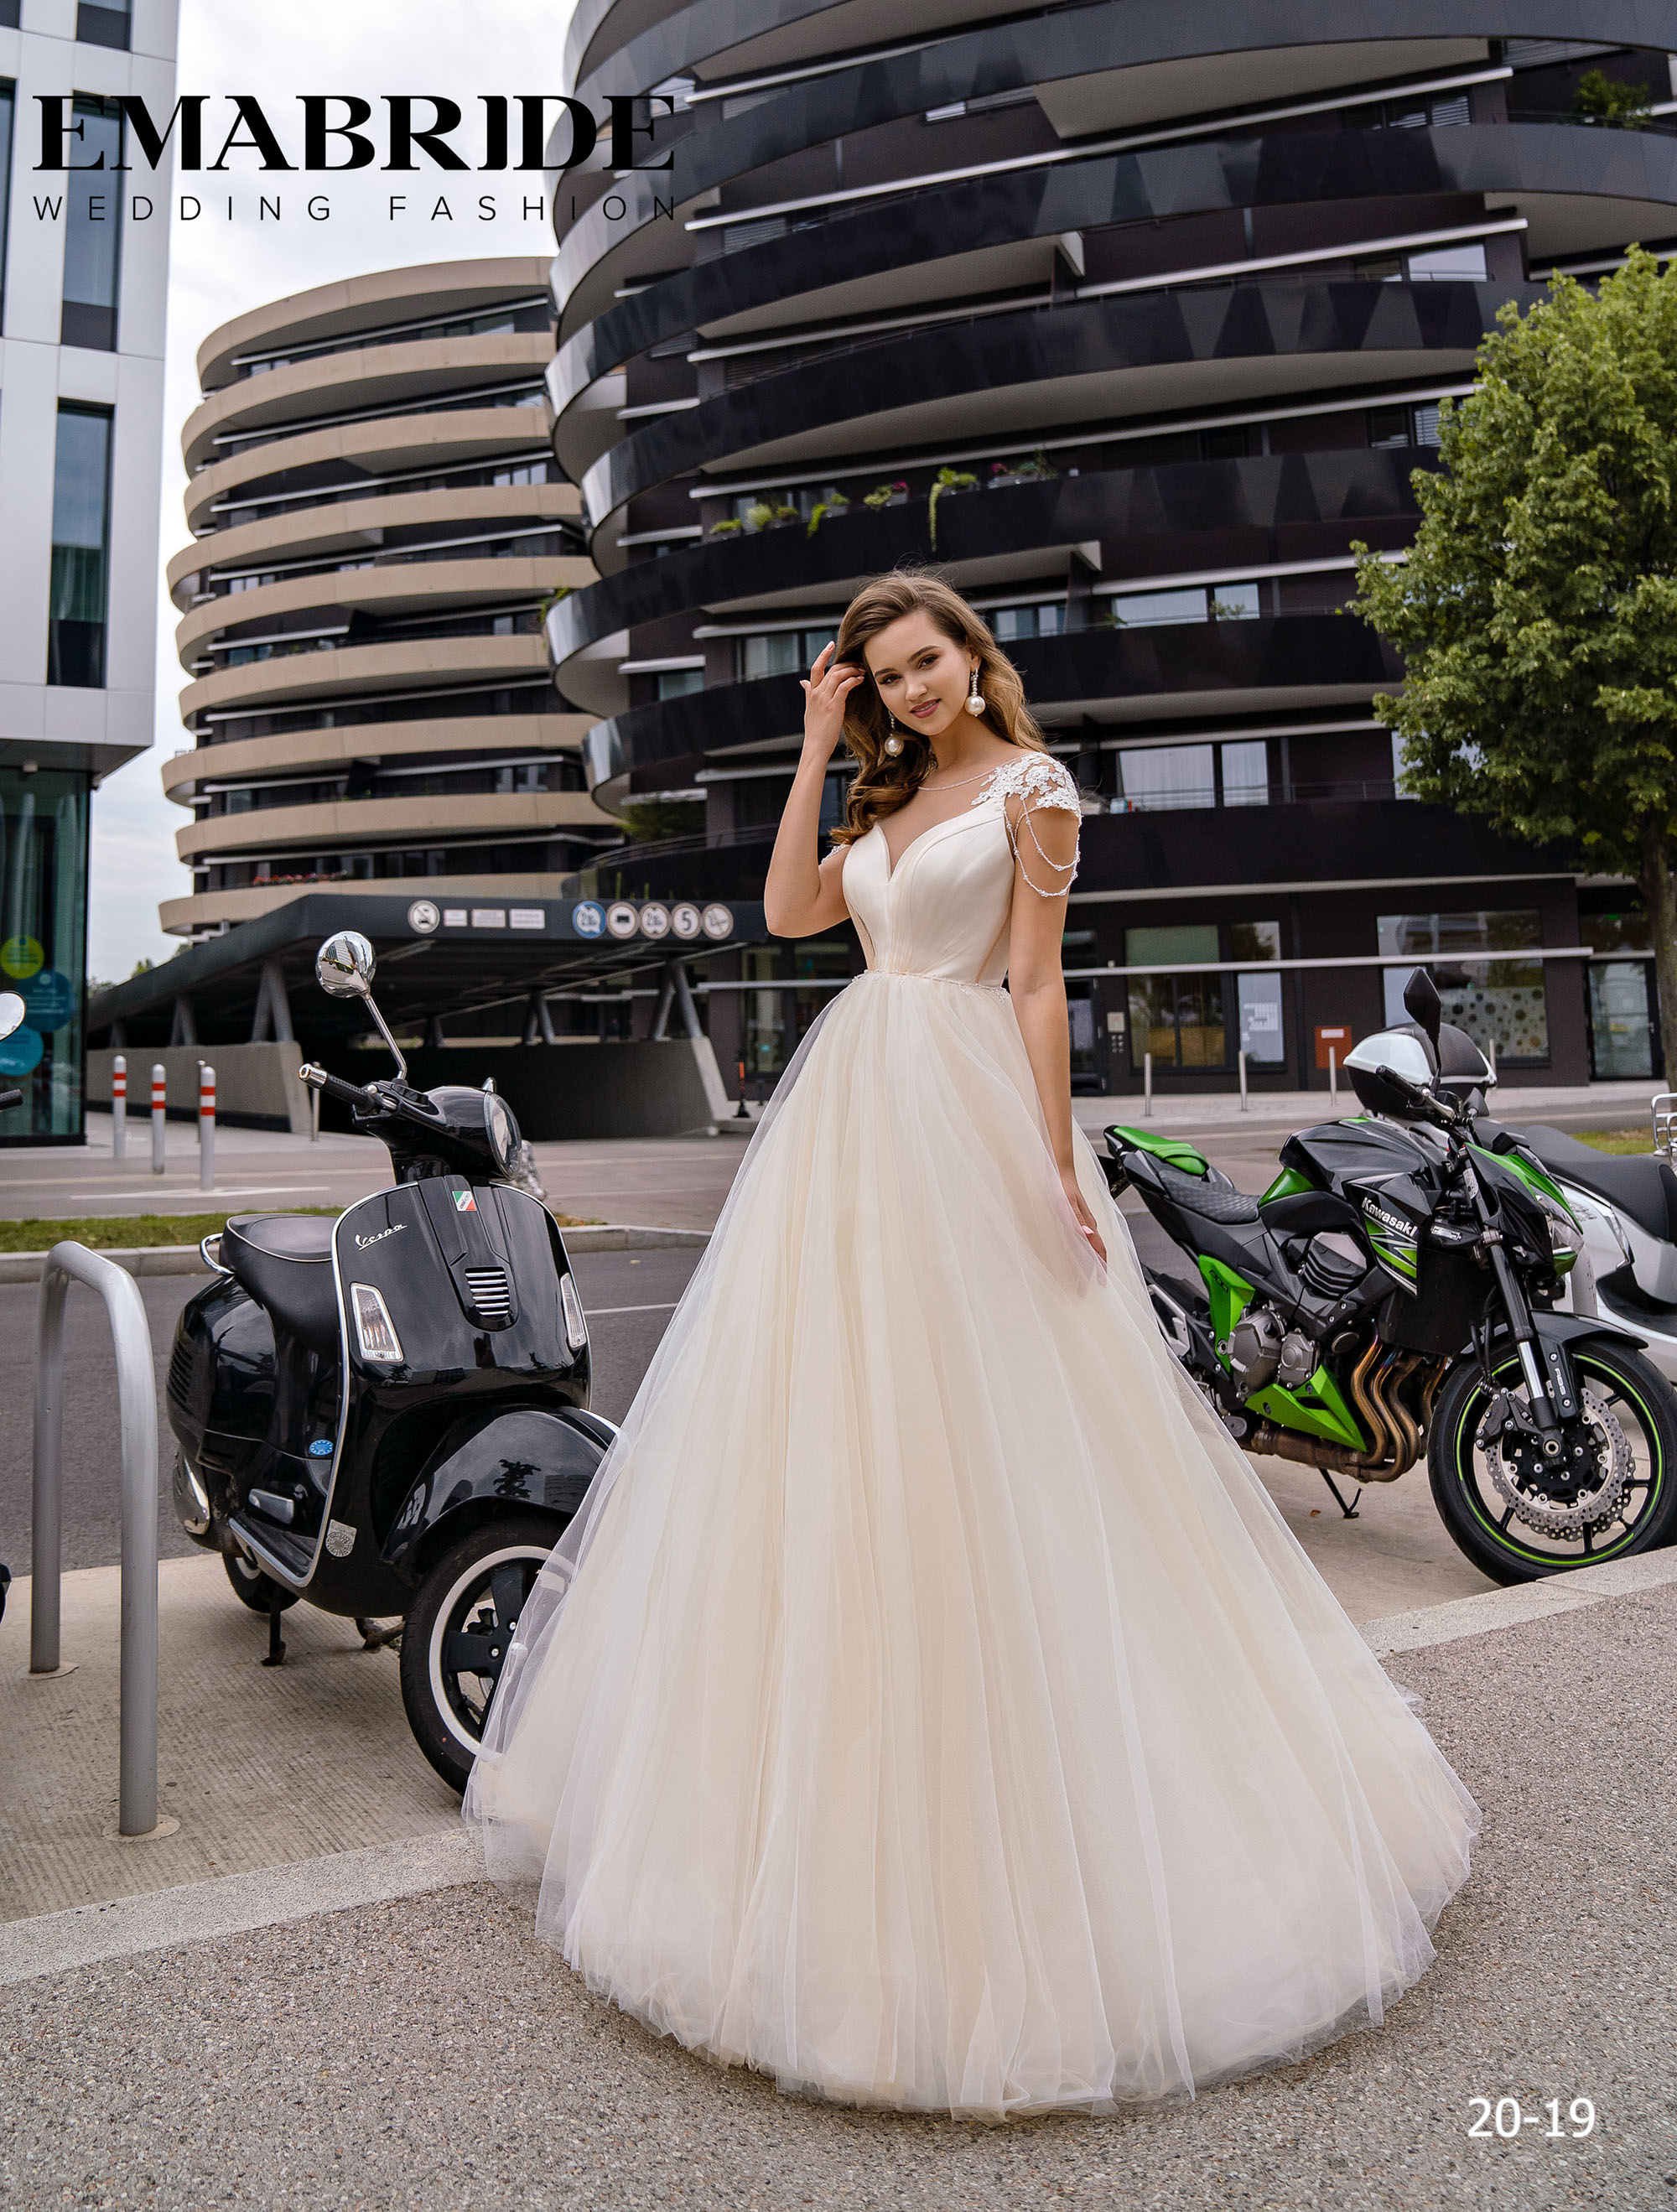 Model 20-19 | Buy wedding dresses wholesale by the ukrainian manufacturer Emabride